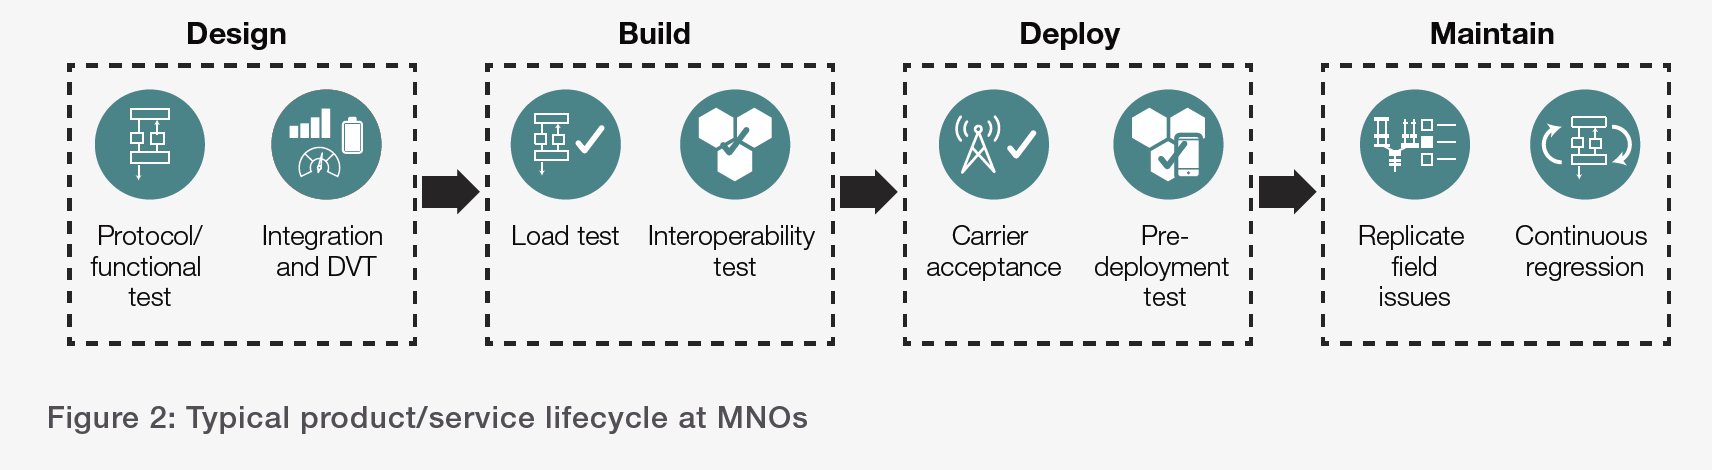 Figure 2: Typical product/service lifecycle at MNOs